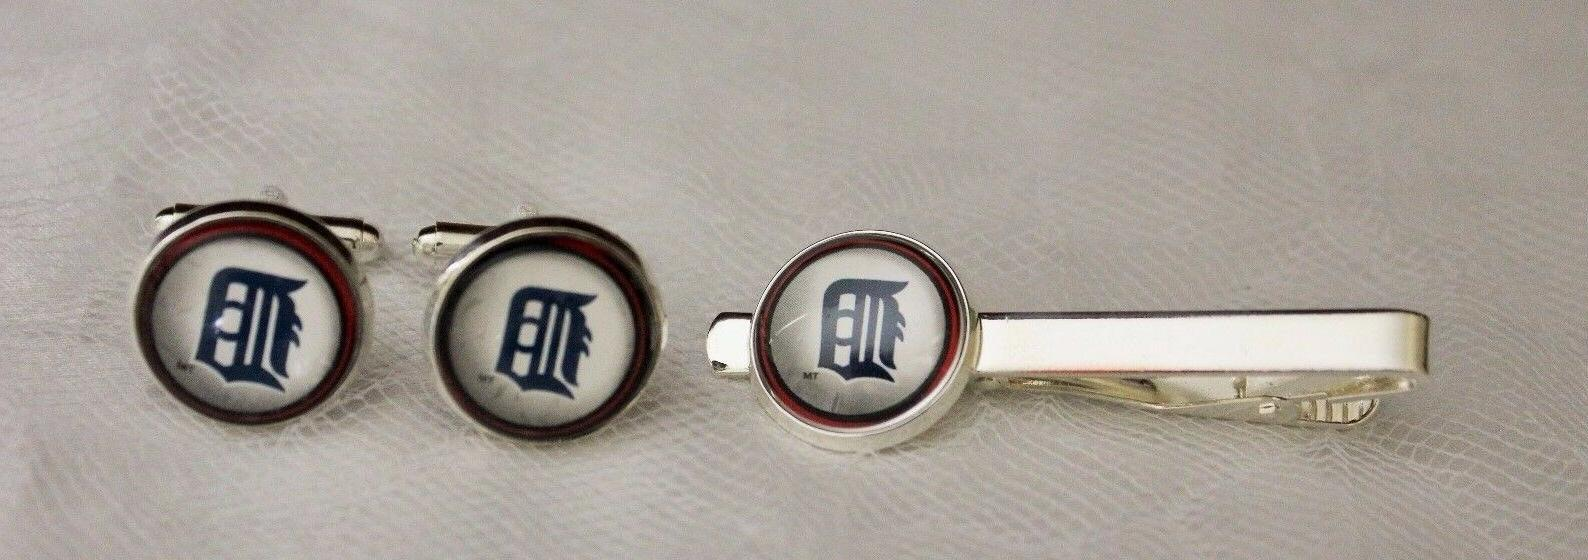 detroit tigers cuff links and tie clip